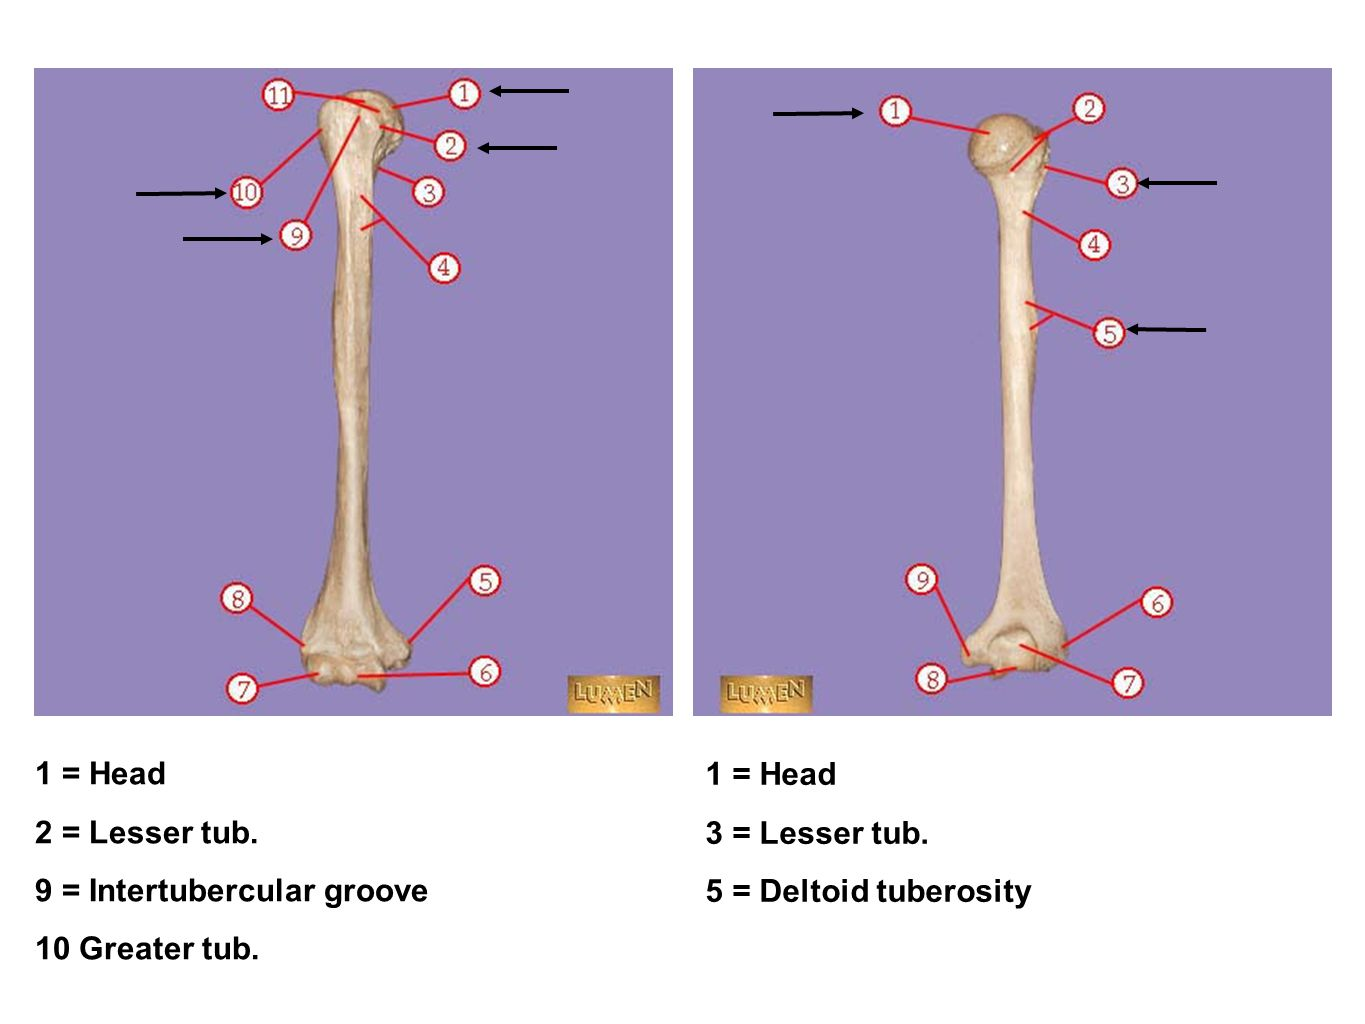 1 = Head 2 = Lesser tub. 9 = Intertubercular groove.